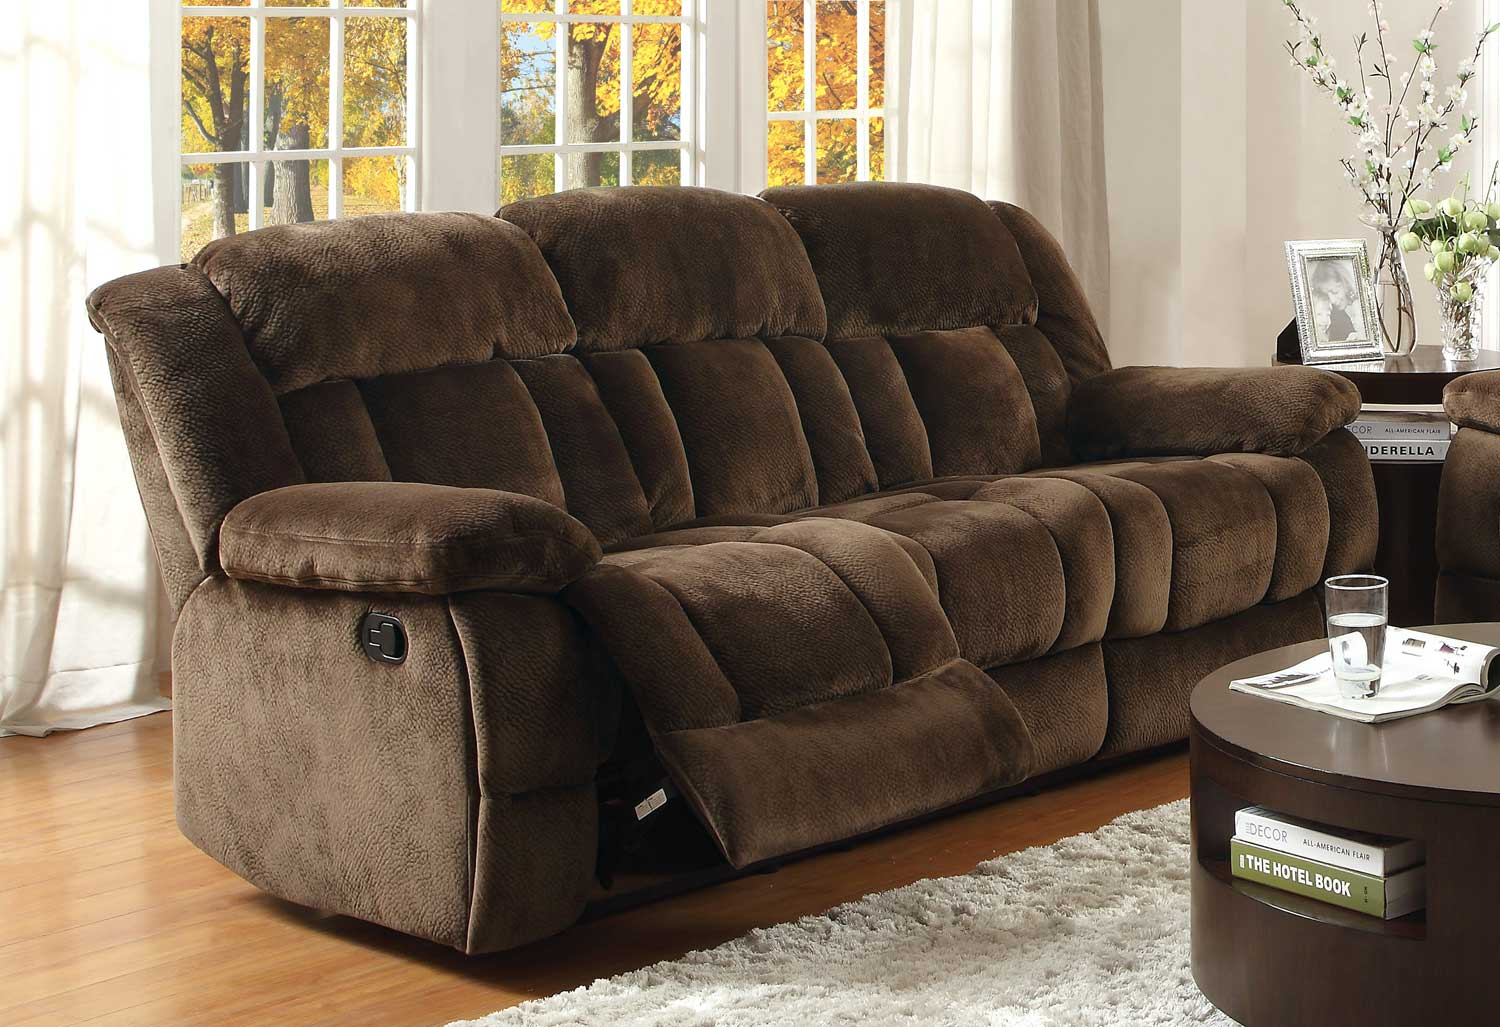 homelegance laurelton reclining sofa set chocolate textured plush microfiber u9636 3. Black Bedroom Furniture Sets. Home Design Ideas